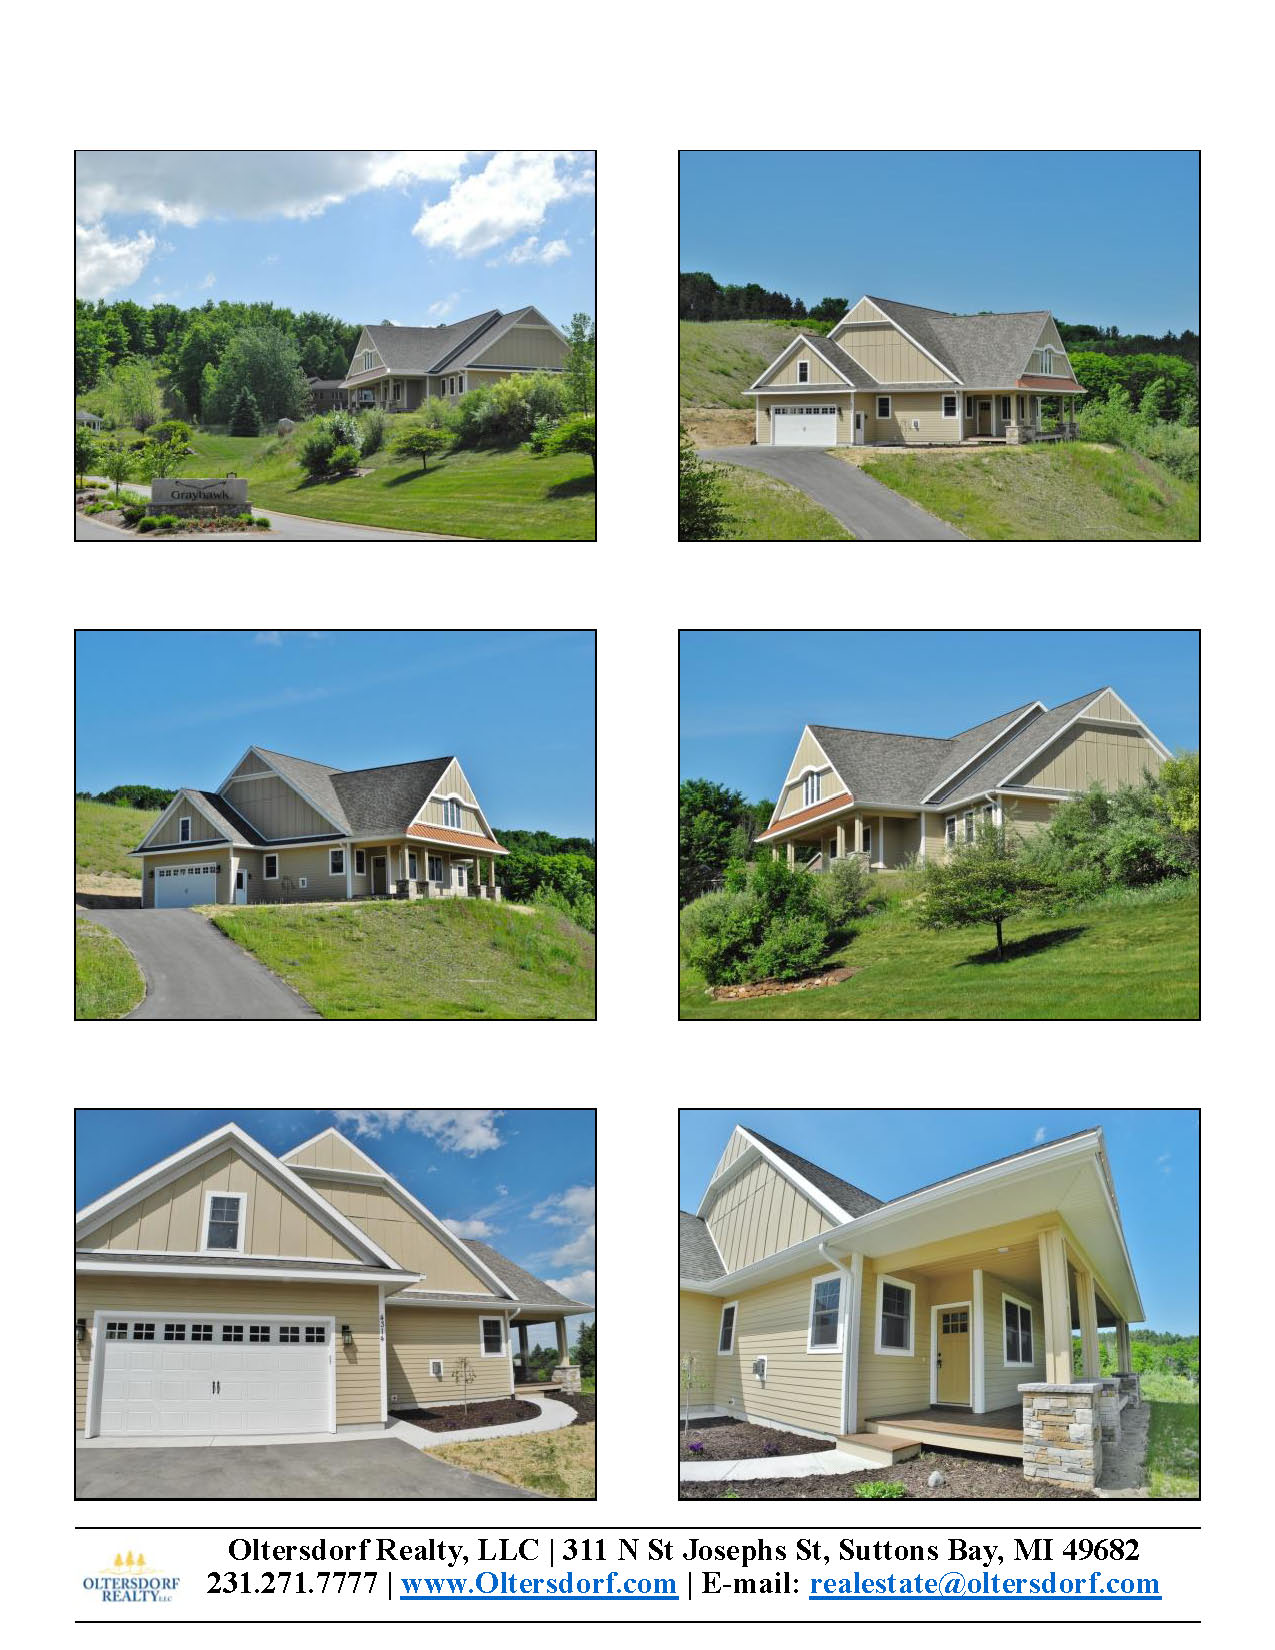 4314 Buteo Drive, Traverse City, MI – Newly Constructed Ranch Home Close To Downtown for sale by Oltersdorf Realty LLC - Marketing Packet (2).jpg